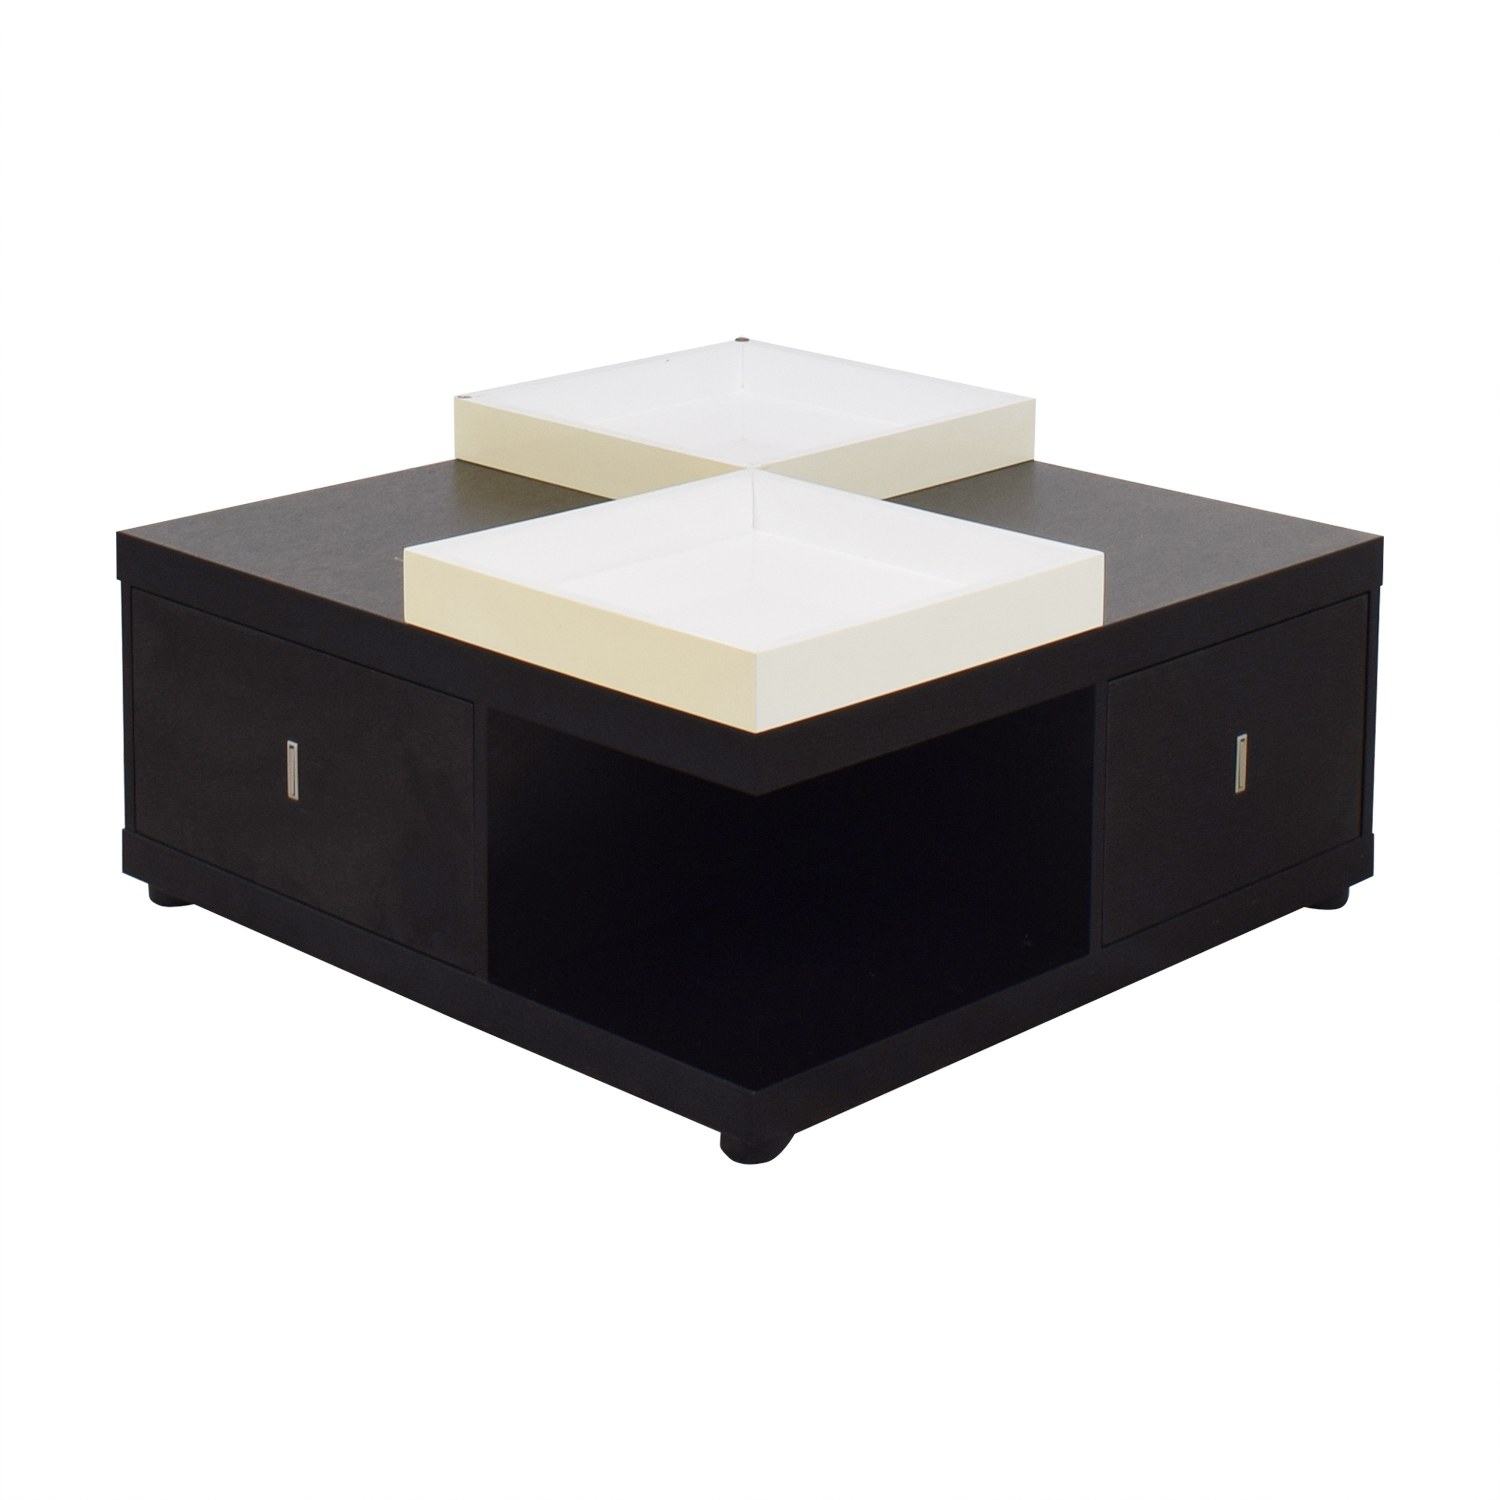 West Elm West Elm Center Table Black